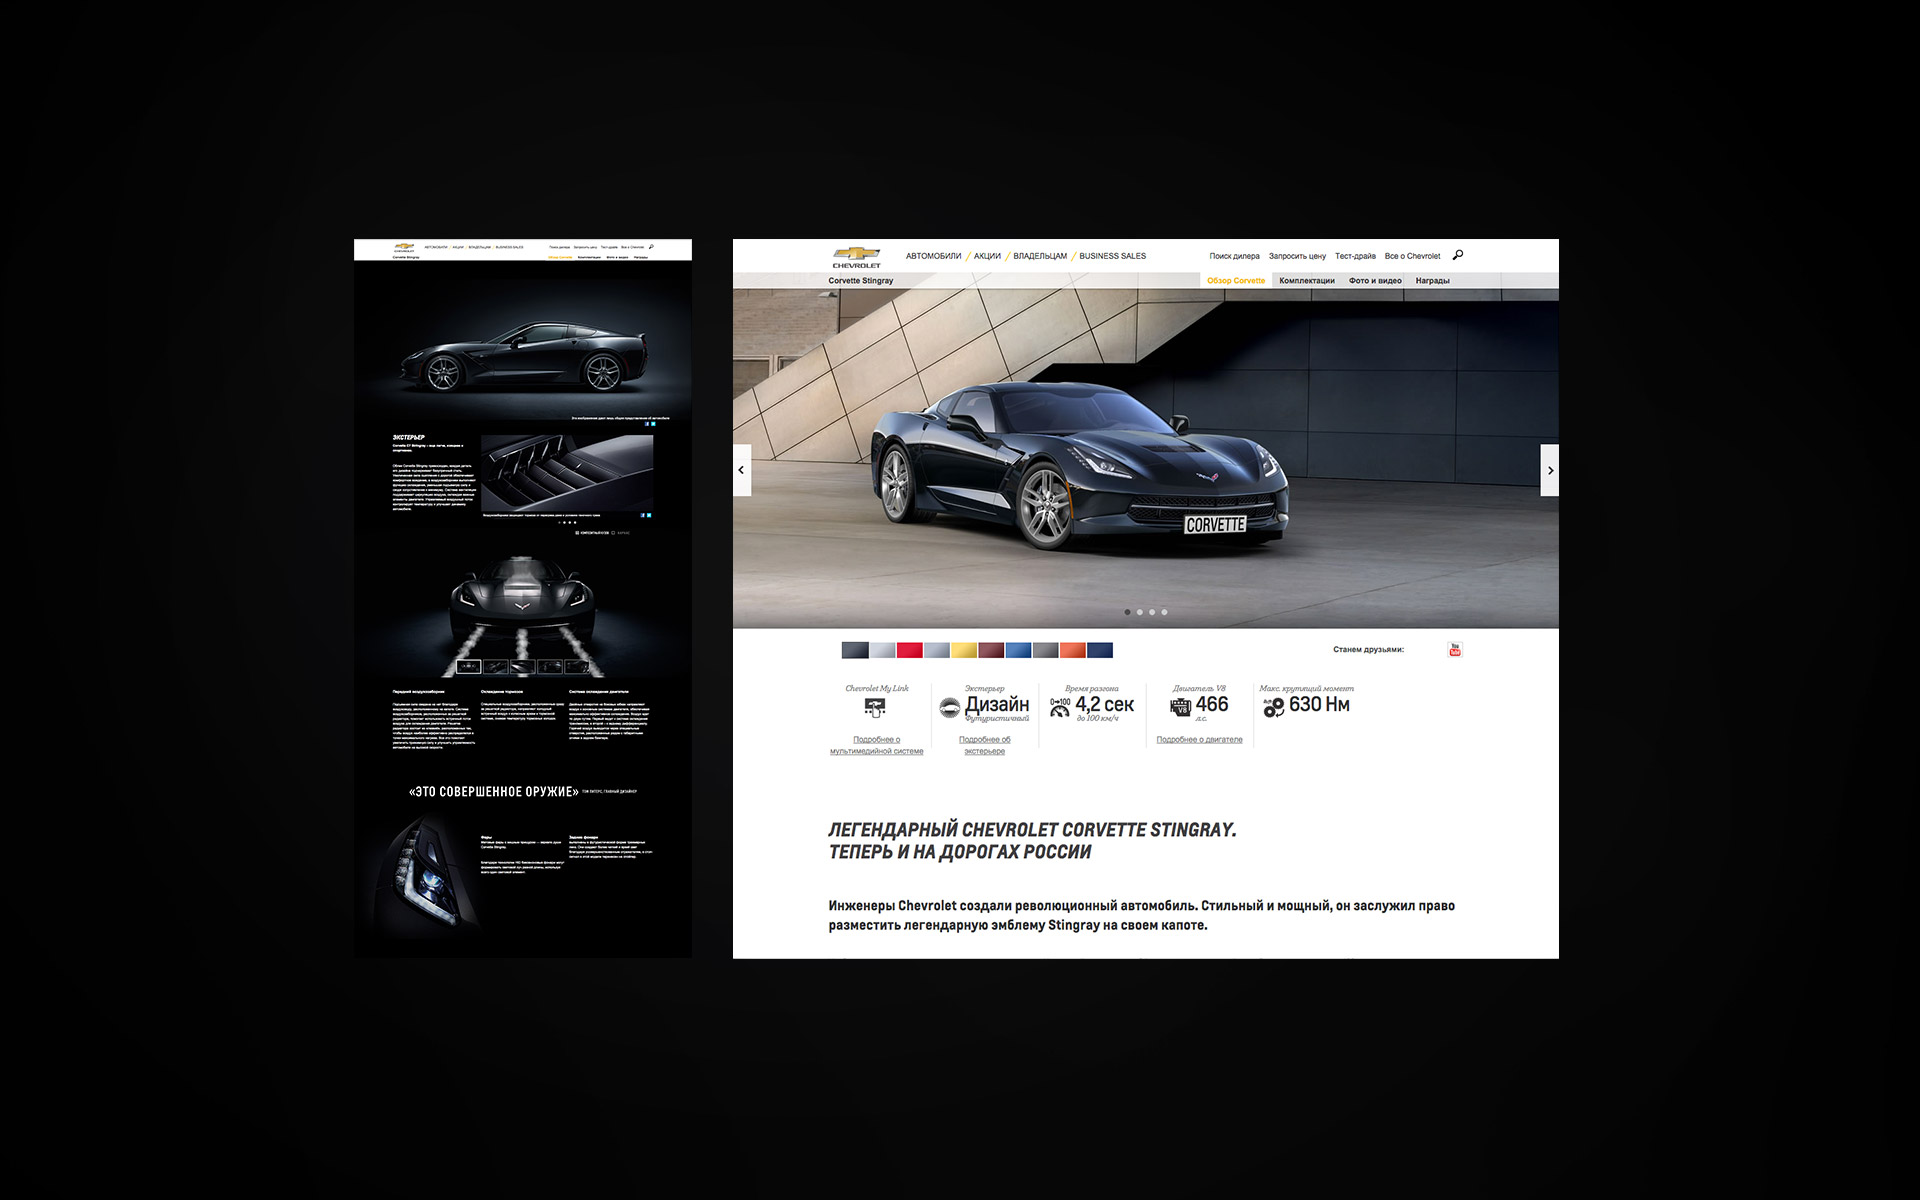 Official website Chevrolet.